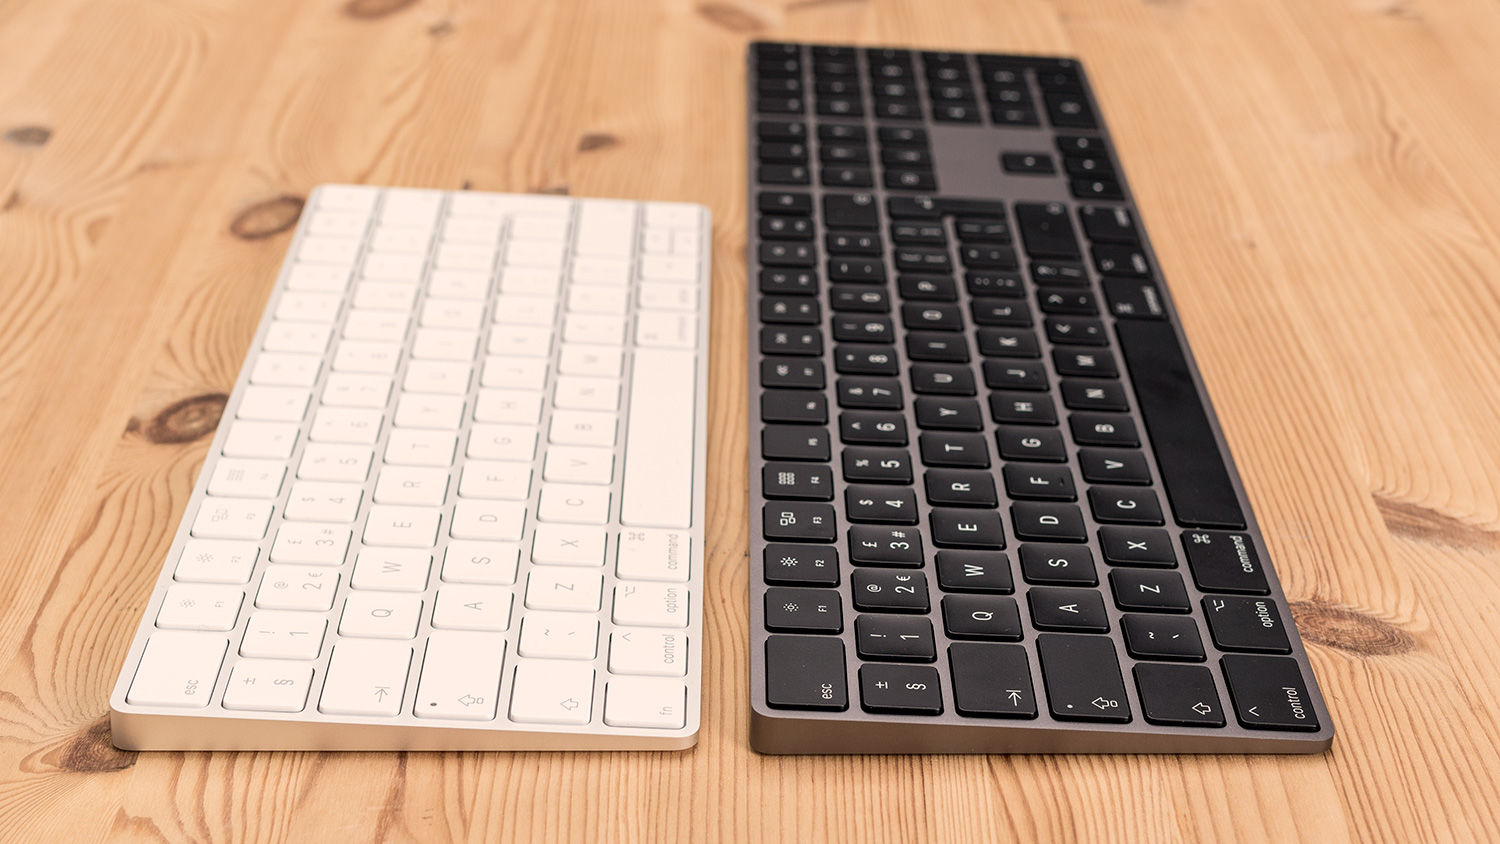 You can now buy apples space gray keyboard mouse and trackpad for magic keyboard thecheapjerseys Image collections